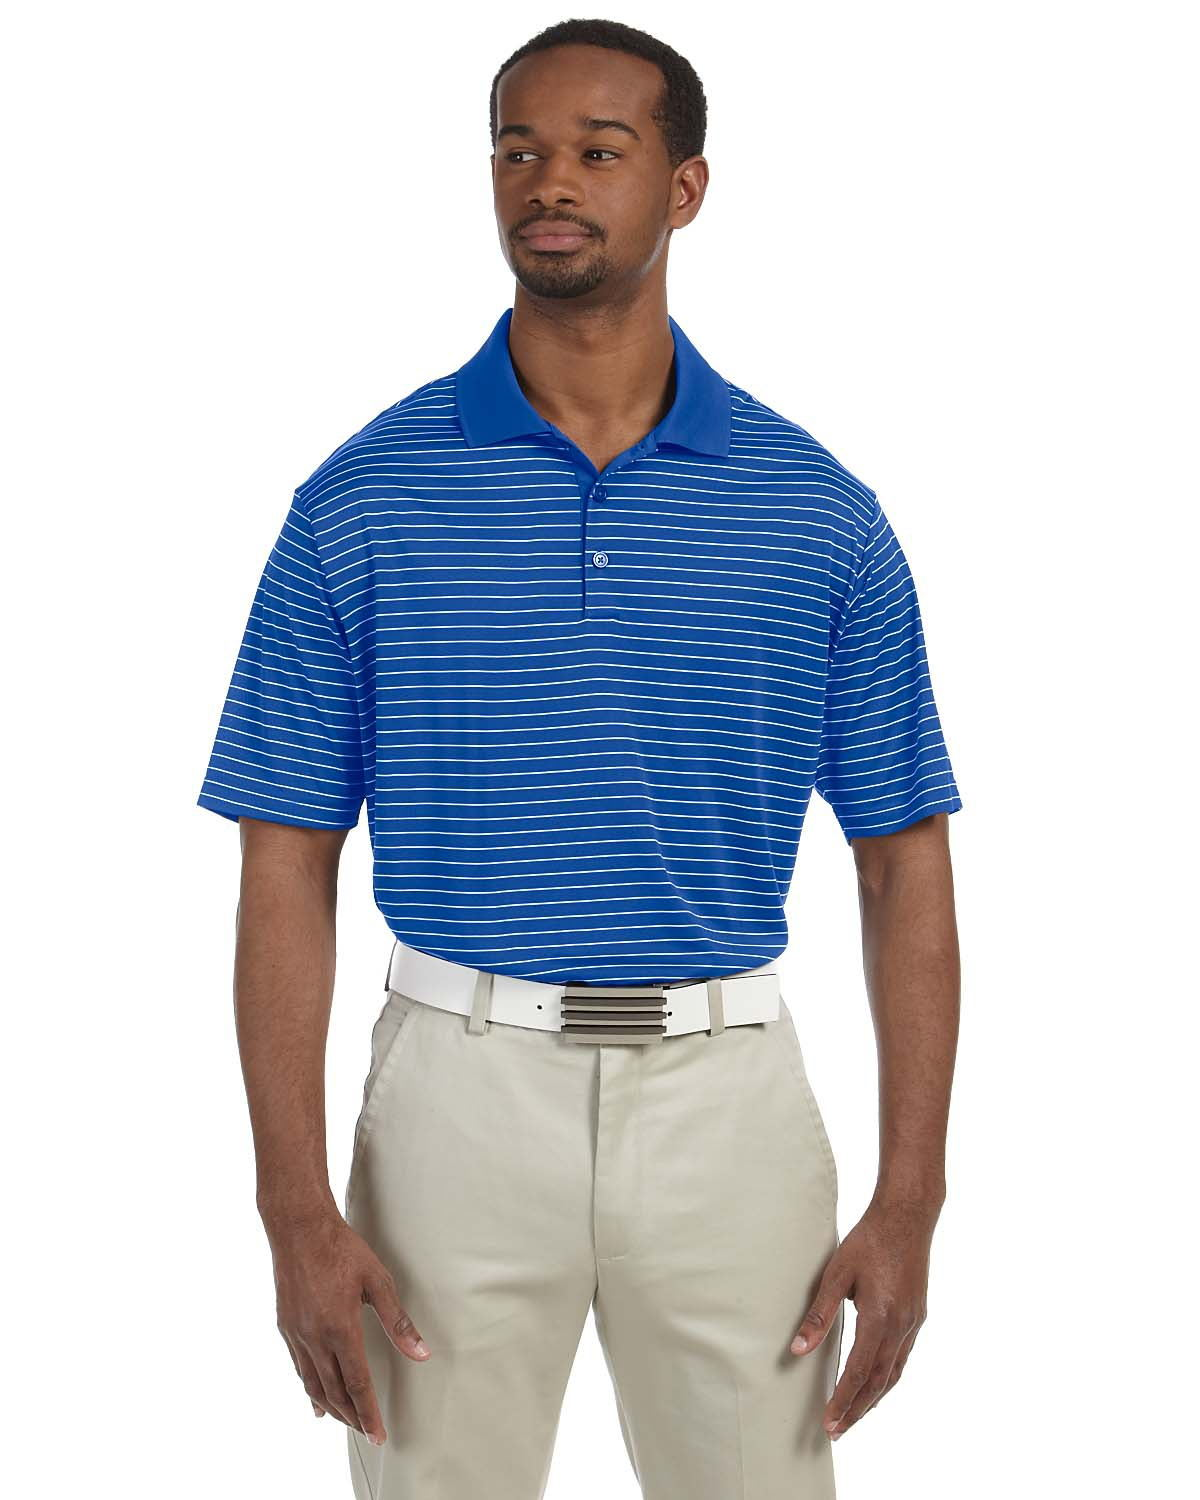 adidas Golf A160 - ClimaLite Pencil Striped Polo